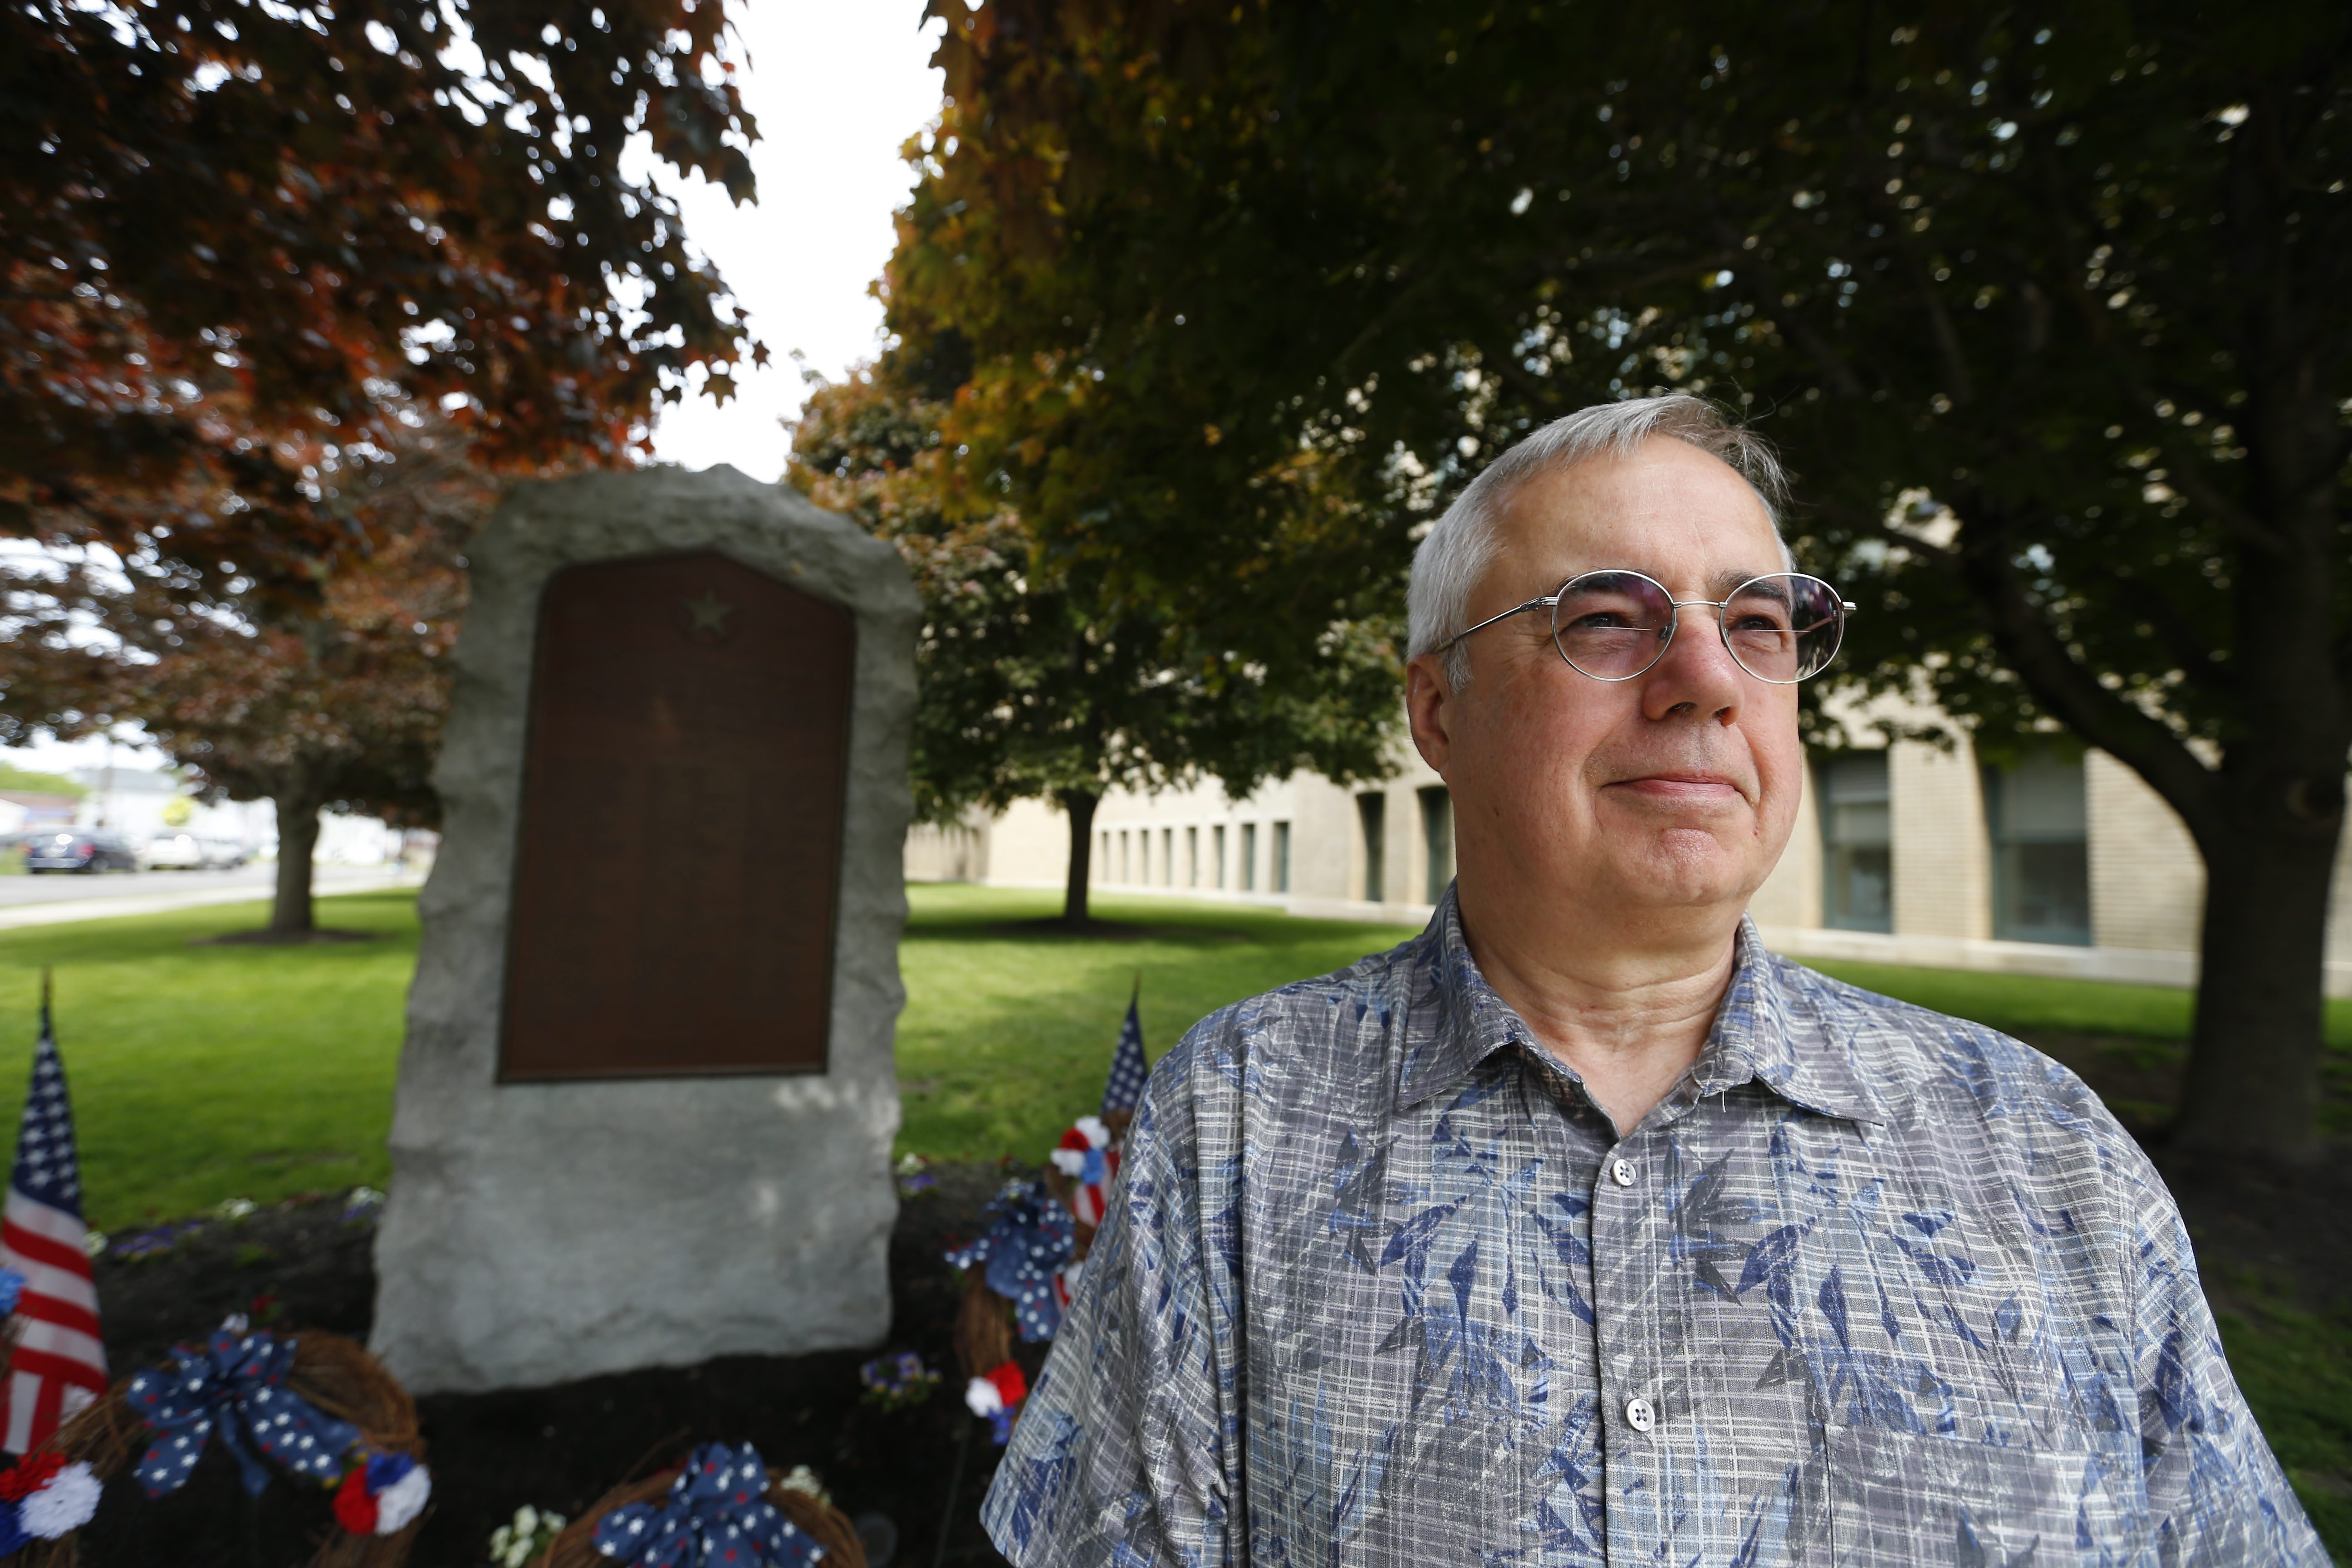 """I was looking at these names on the monument, and I thought to myself, 'These people are more than just names on a plaque or a piece of rock. What are the stories behind these names?' "" – Matthew Parsons at South Park High's WWII monument"